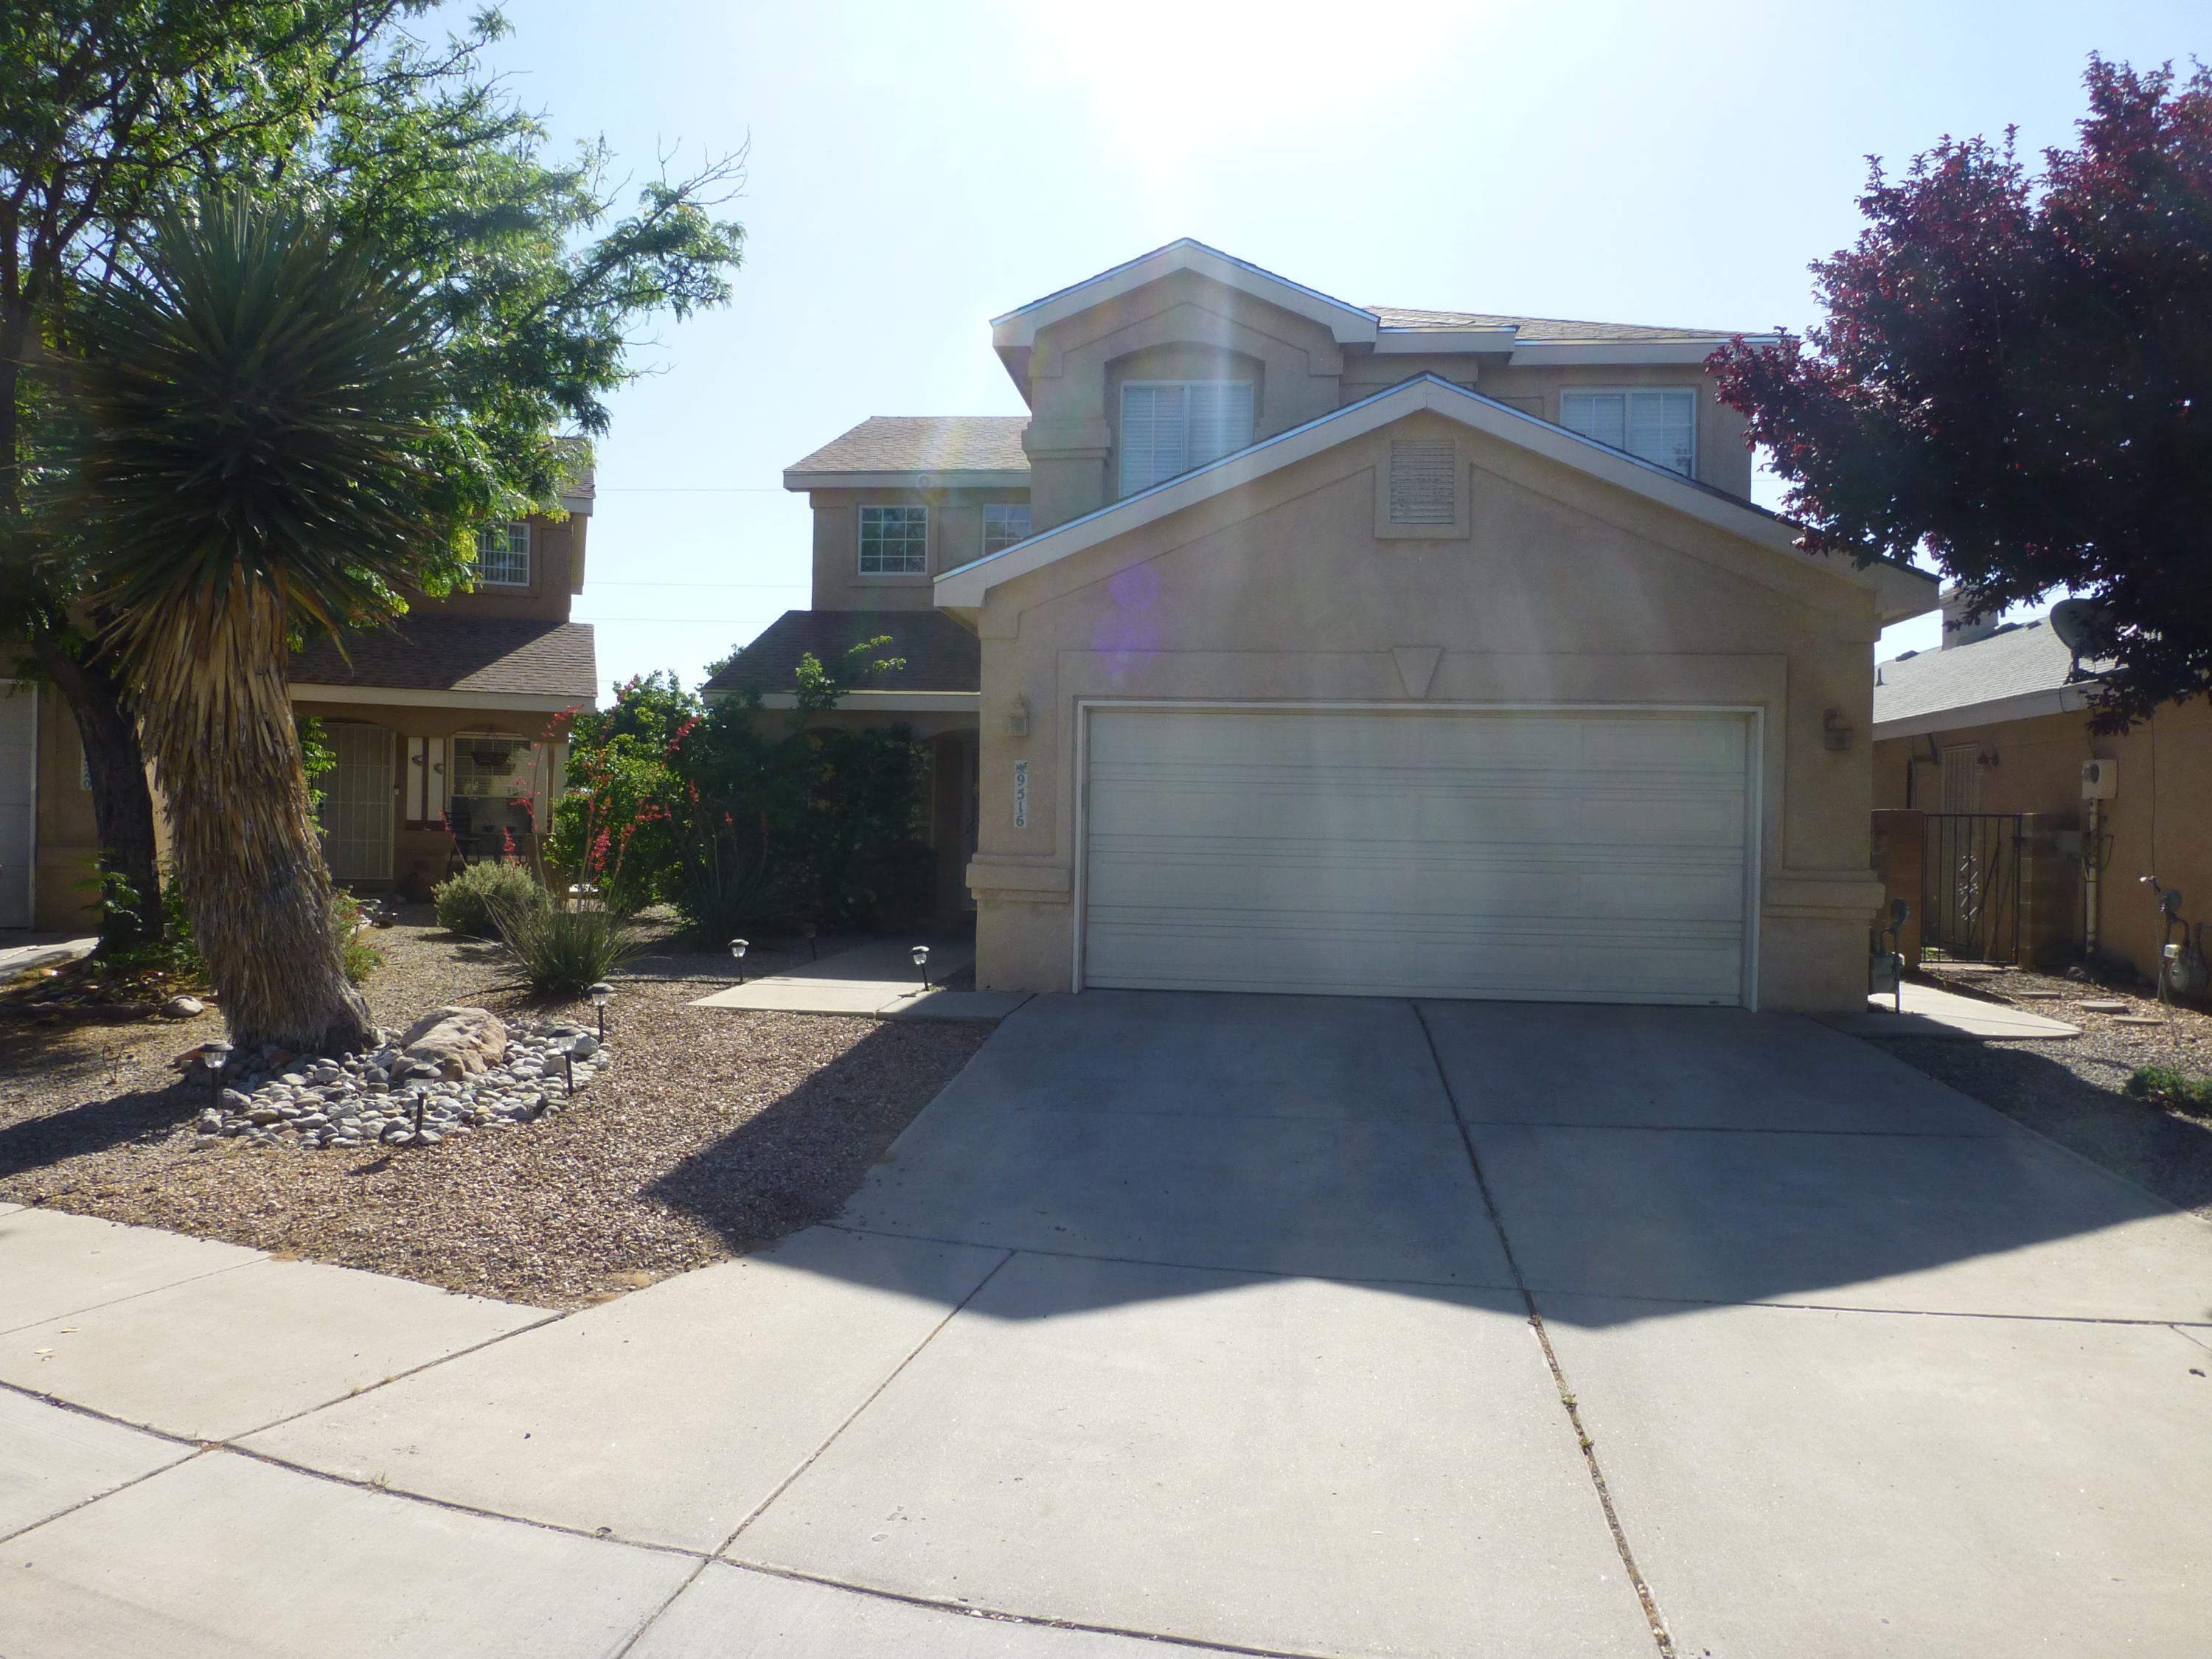 Great home in a great community of Ventana Ranch. Easy access to Paseo Del Norte. Newer roof. Granite counters. Backyard great for entertaining. Nice open concept.